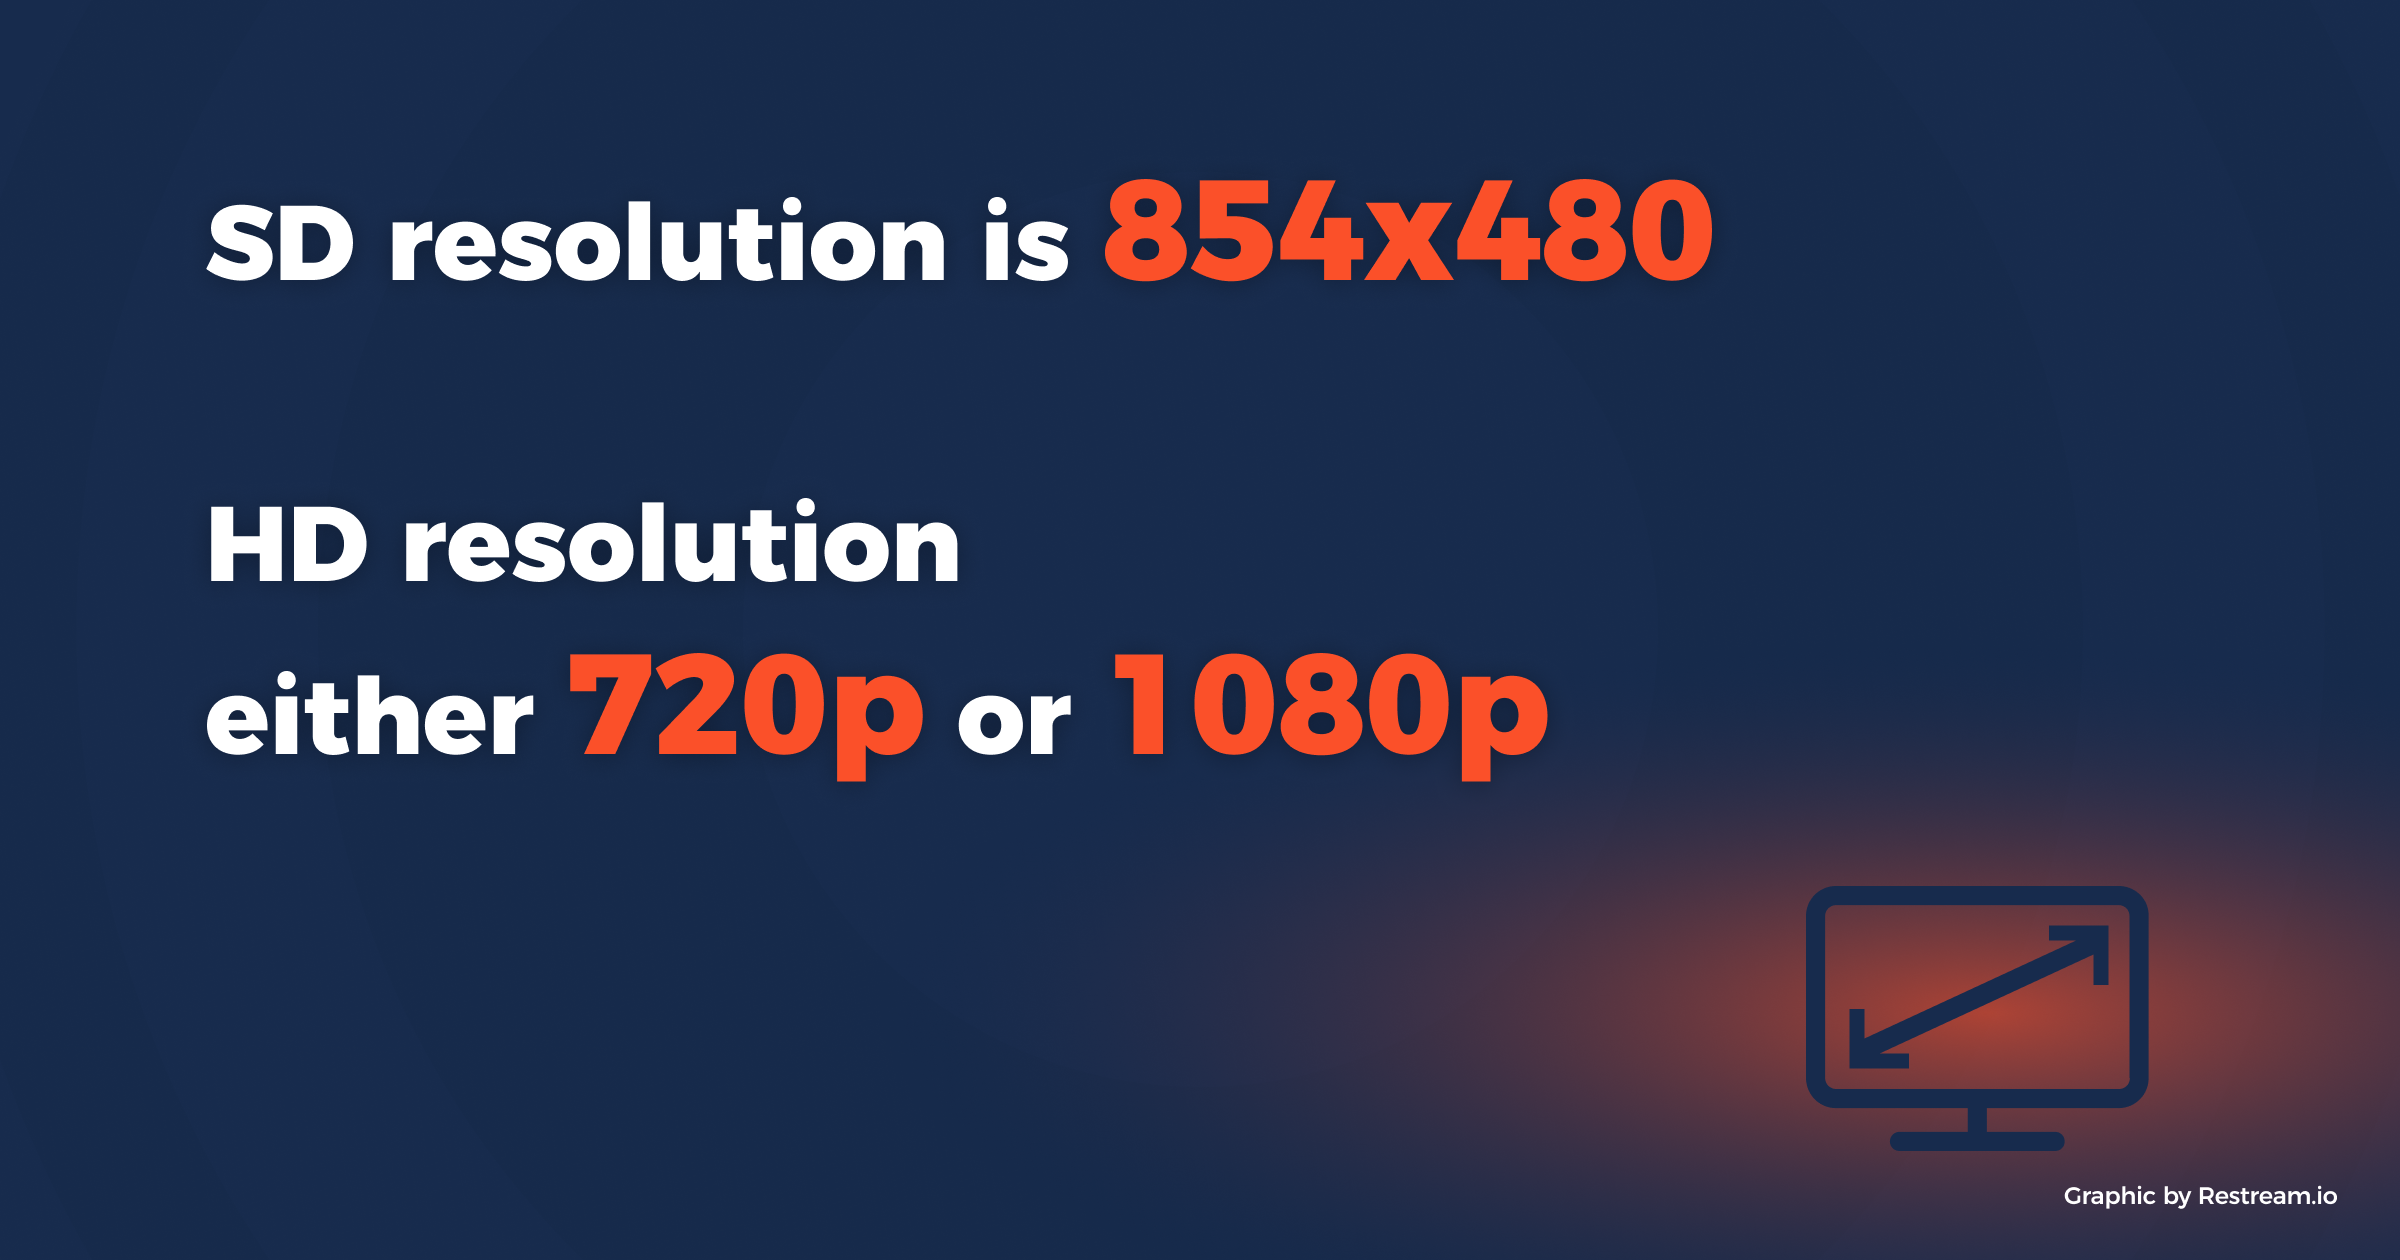 SD resolution is 854x480, HD resolution either 720p or 1080p